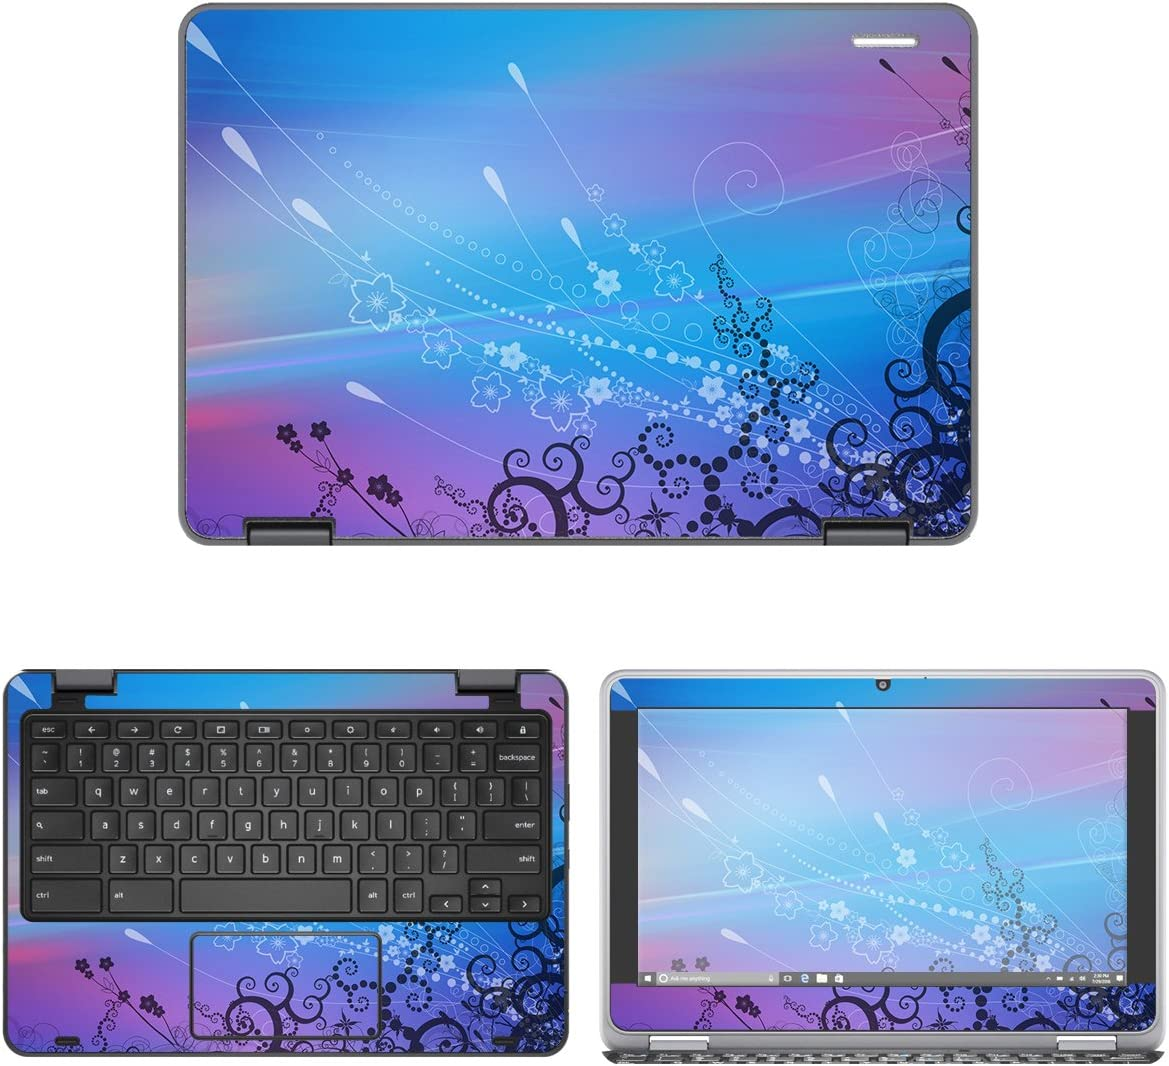 decalrus - Protective Decal Skin Sticker for Dell ChromeBook 11 3189, 3181 (11.6